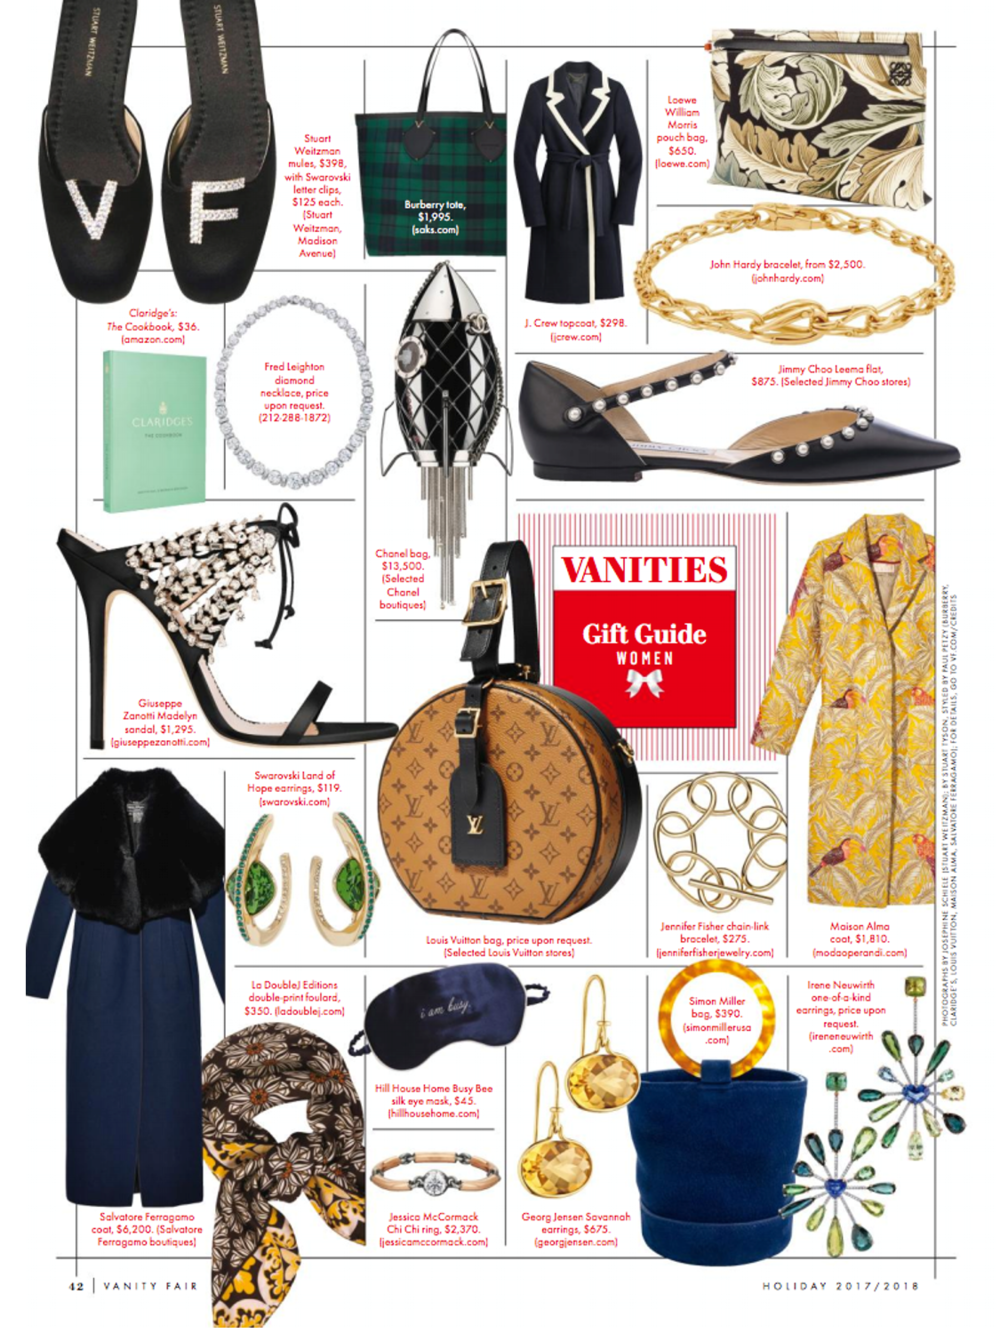 VANITYFAIR_MAISONALMA_GIFTGUIDE_ONLINE.png